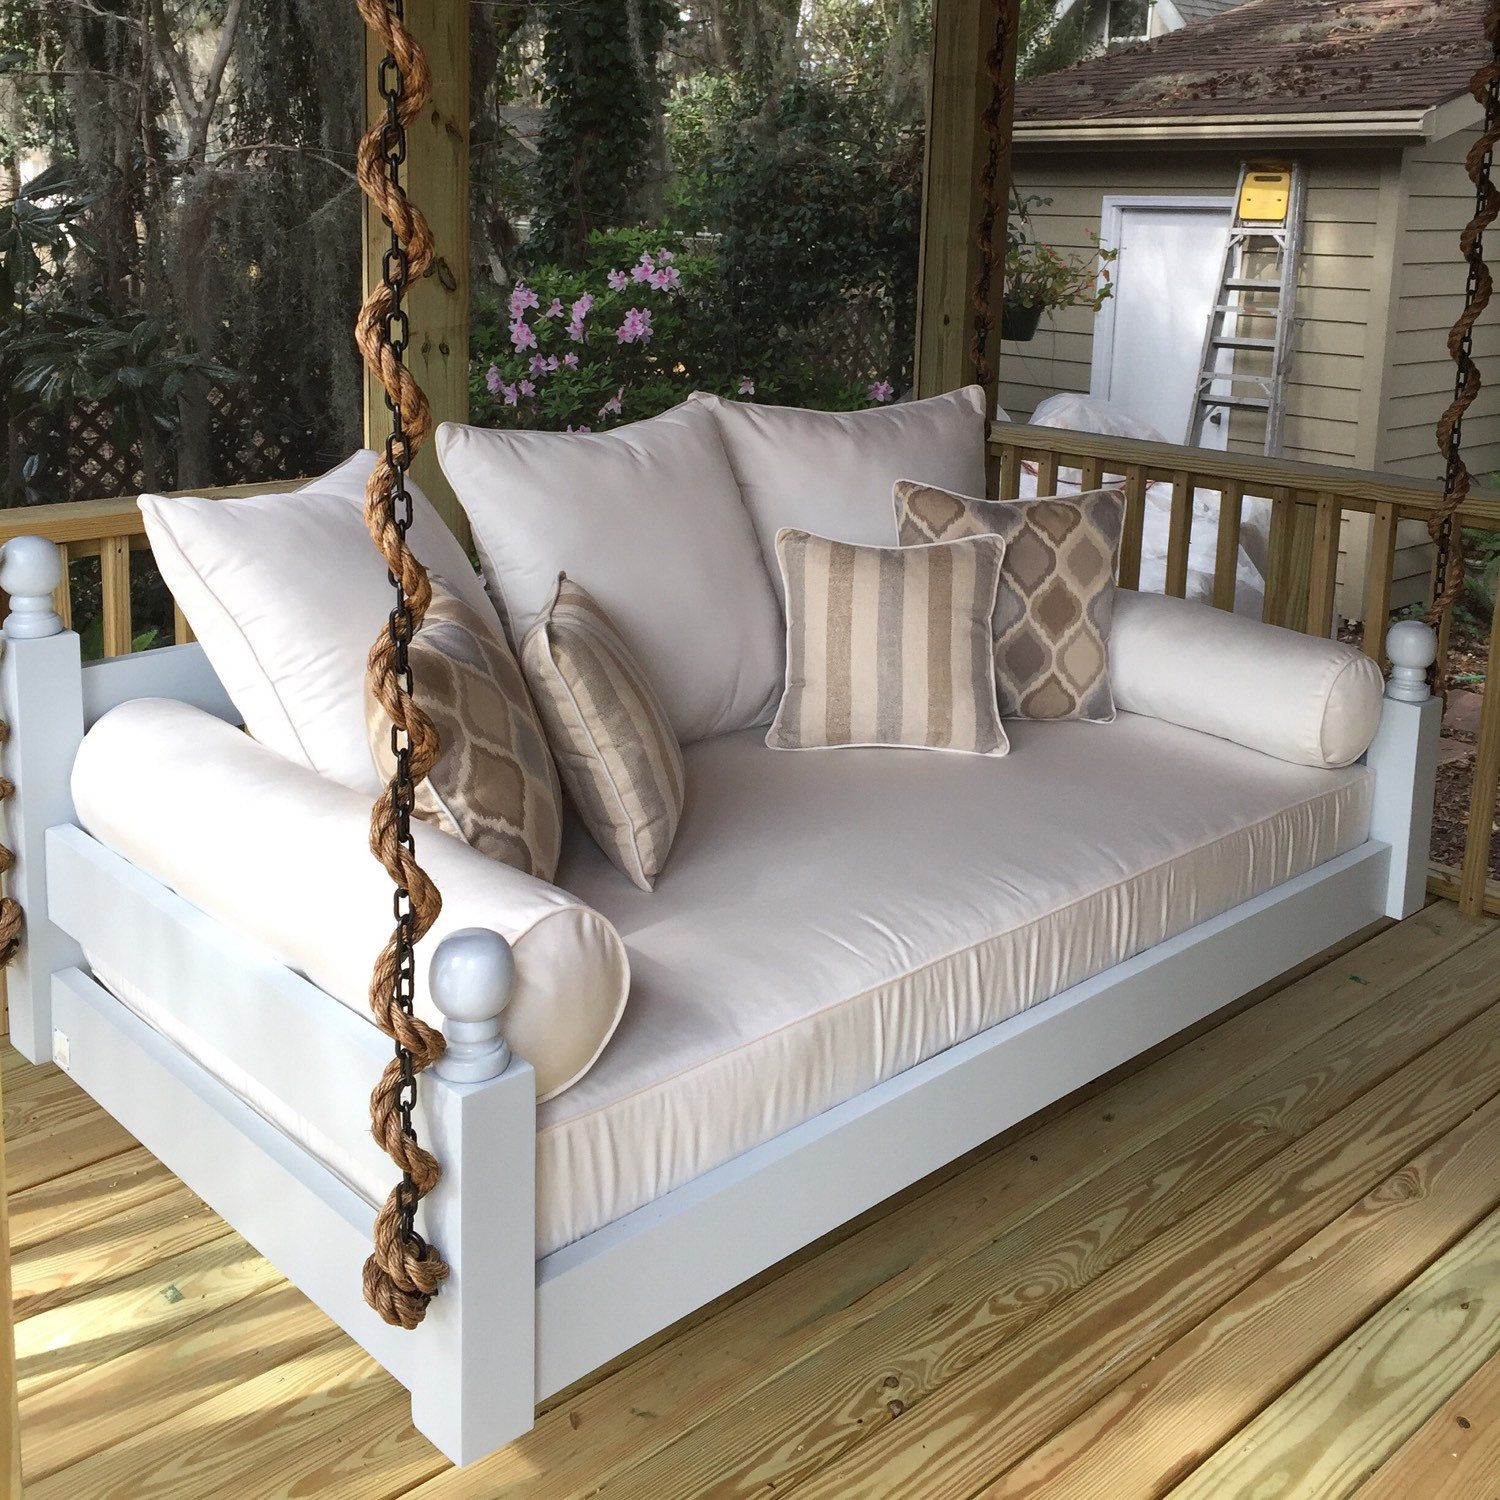 Porch Swing Outdoor Living Cushions Pillow Hammock Swinging Bed Bbq Party Outdoor Party Comfy Outdoor S Porch Swing Bed Outdoor Bed Swing Daybed Swing